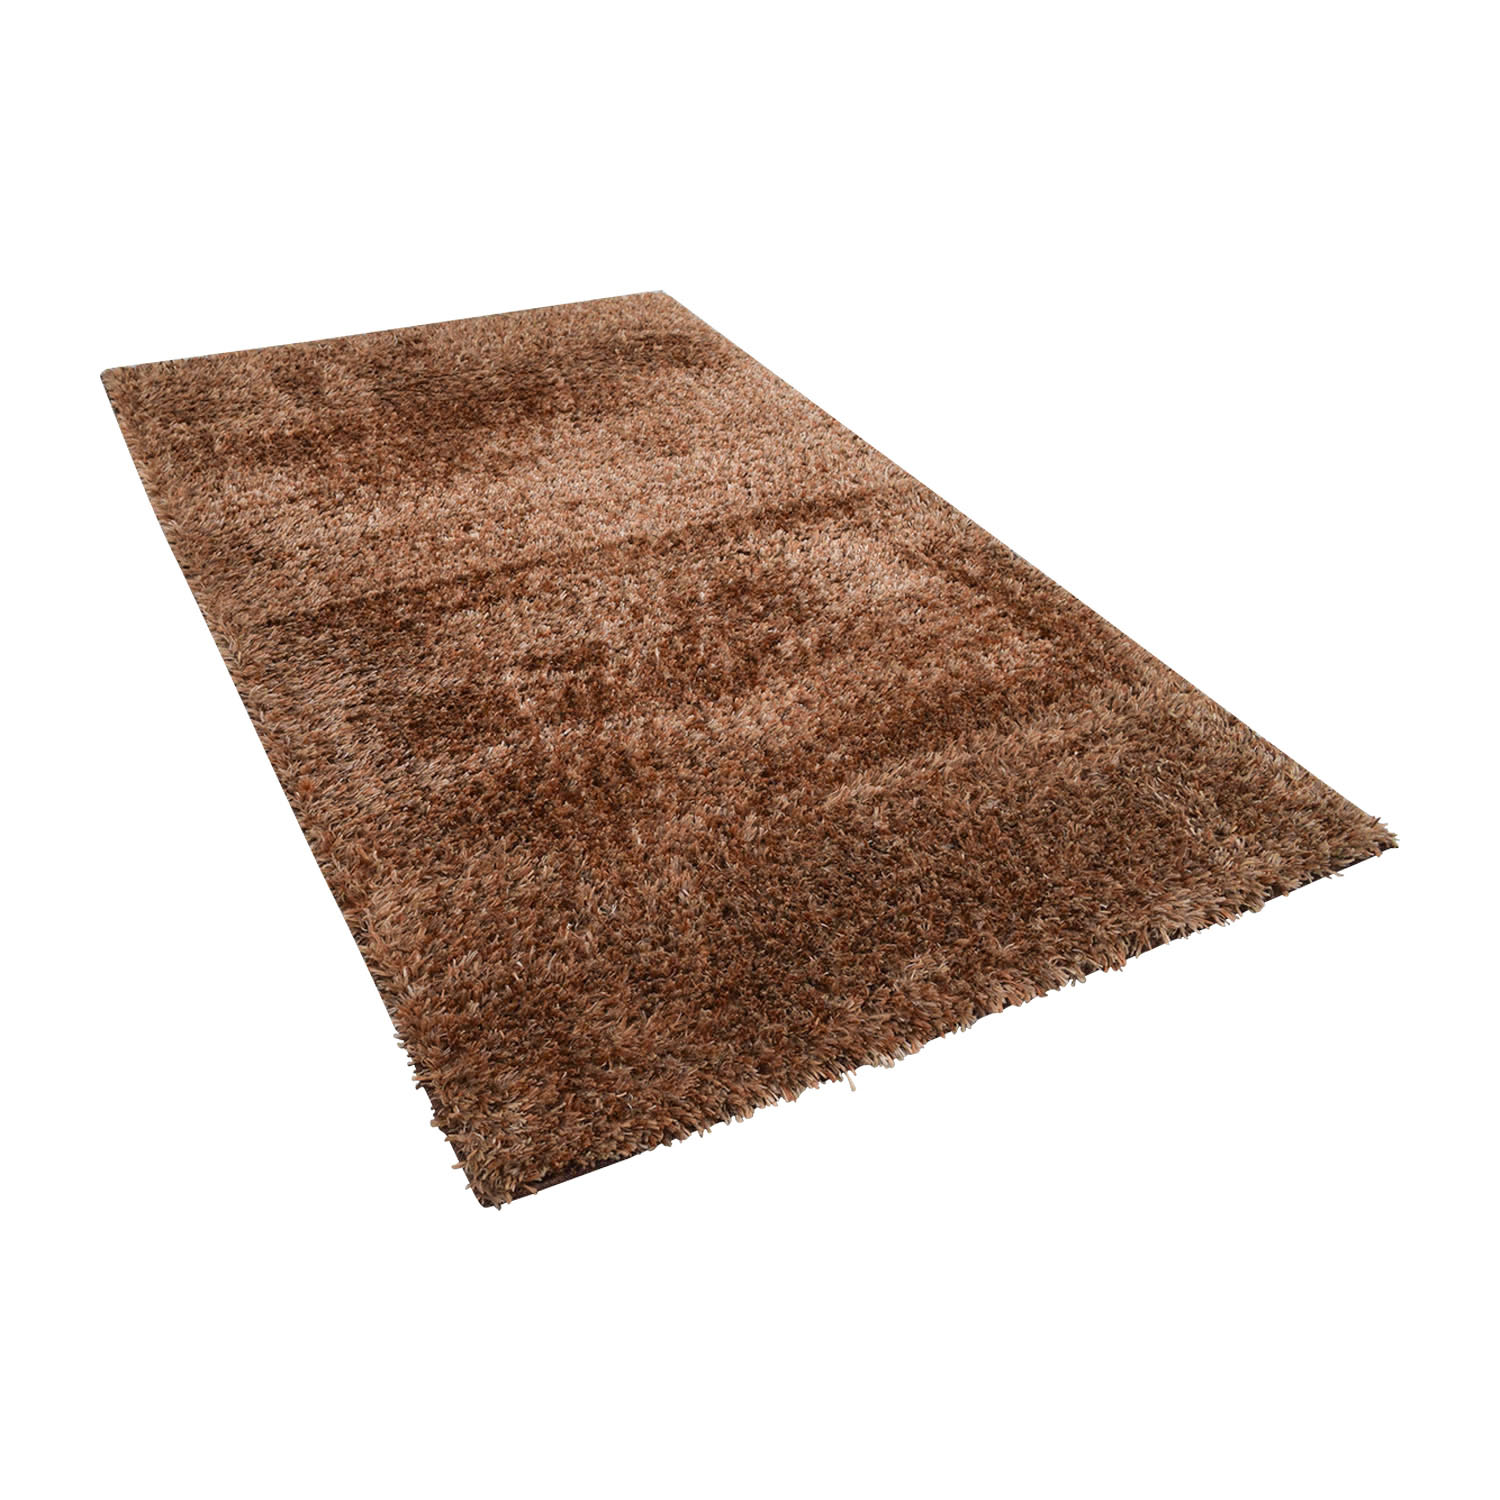 shop Brown Shag Rug online